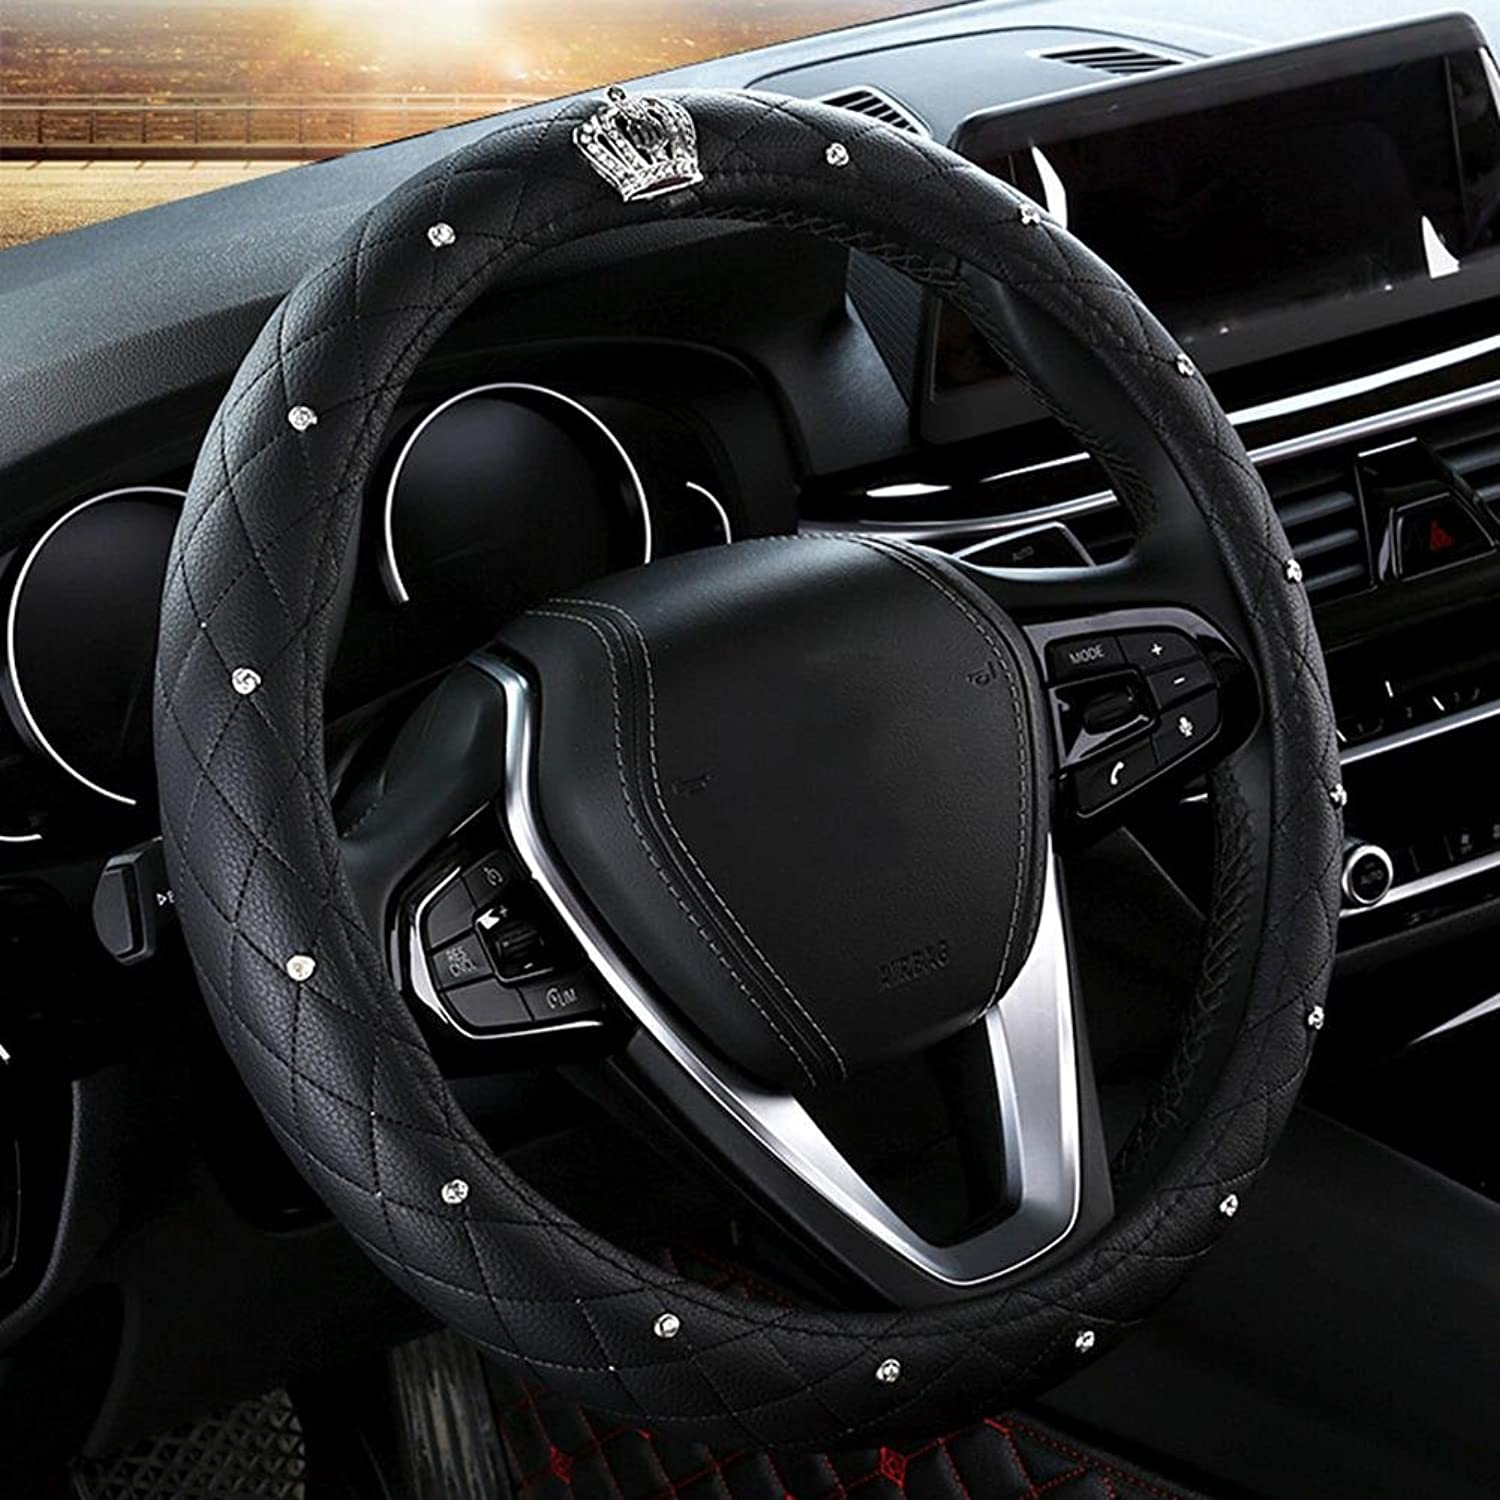 Auto Accessories 2018 Car Steering Wheel Predector, Woman Dedicated Cover Universal 141 2151 8 inch (3738.5 cm), Durable, Breathable, Anti Slip, No Smell, Black, 38cm